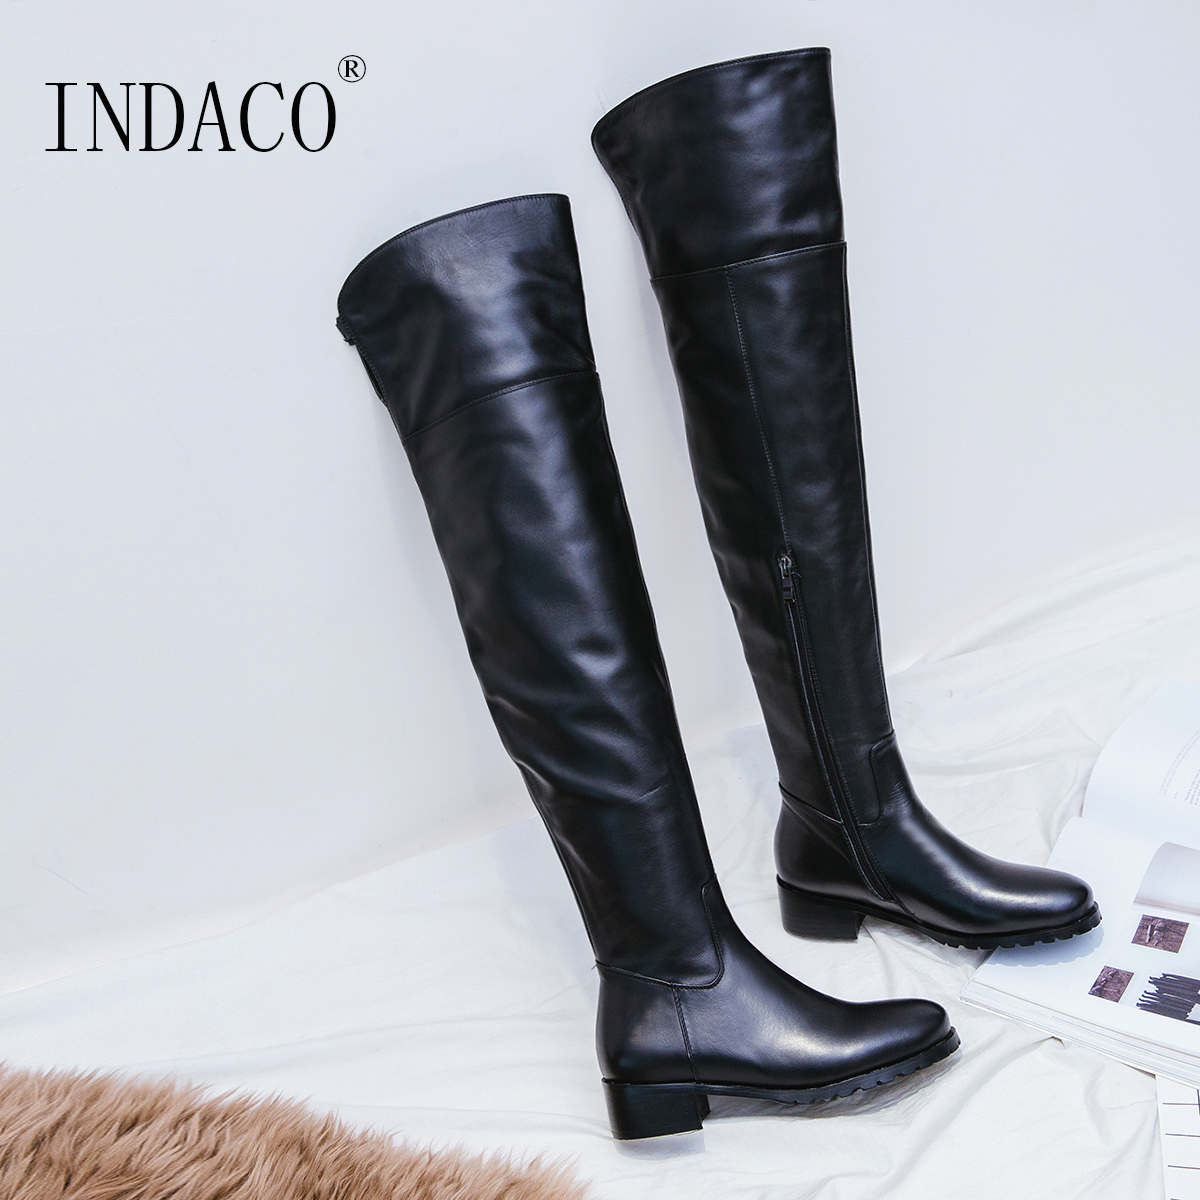 Over the Knee Boots Leather for Women 2018 Knee High Boots New Fashion Botte Hiver Femme 3.5cm jacques lemans jl 1 1937b